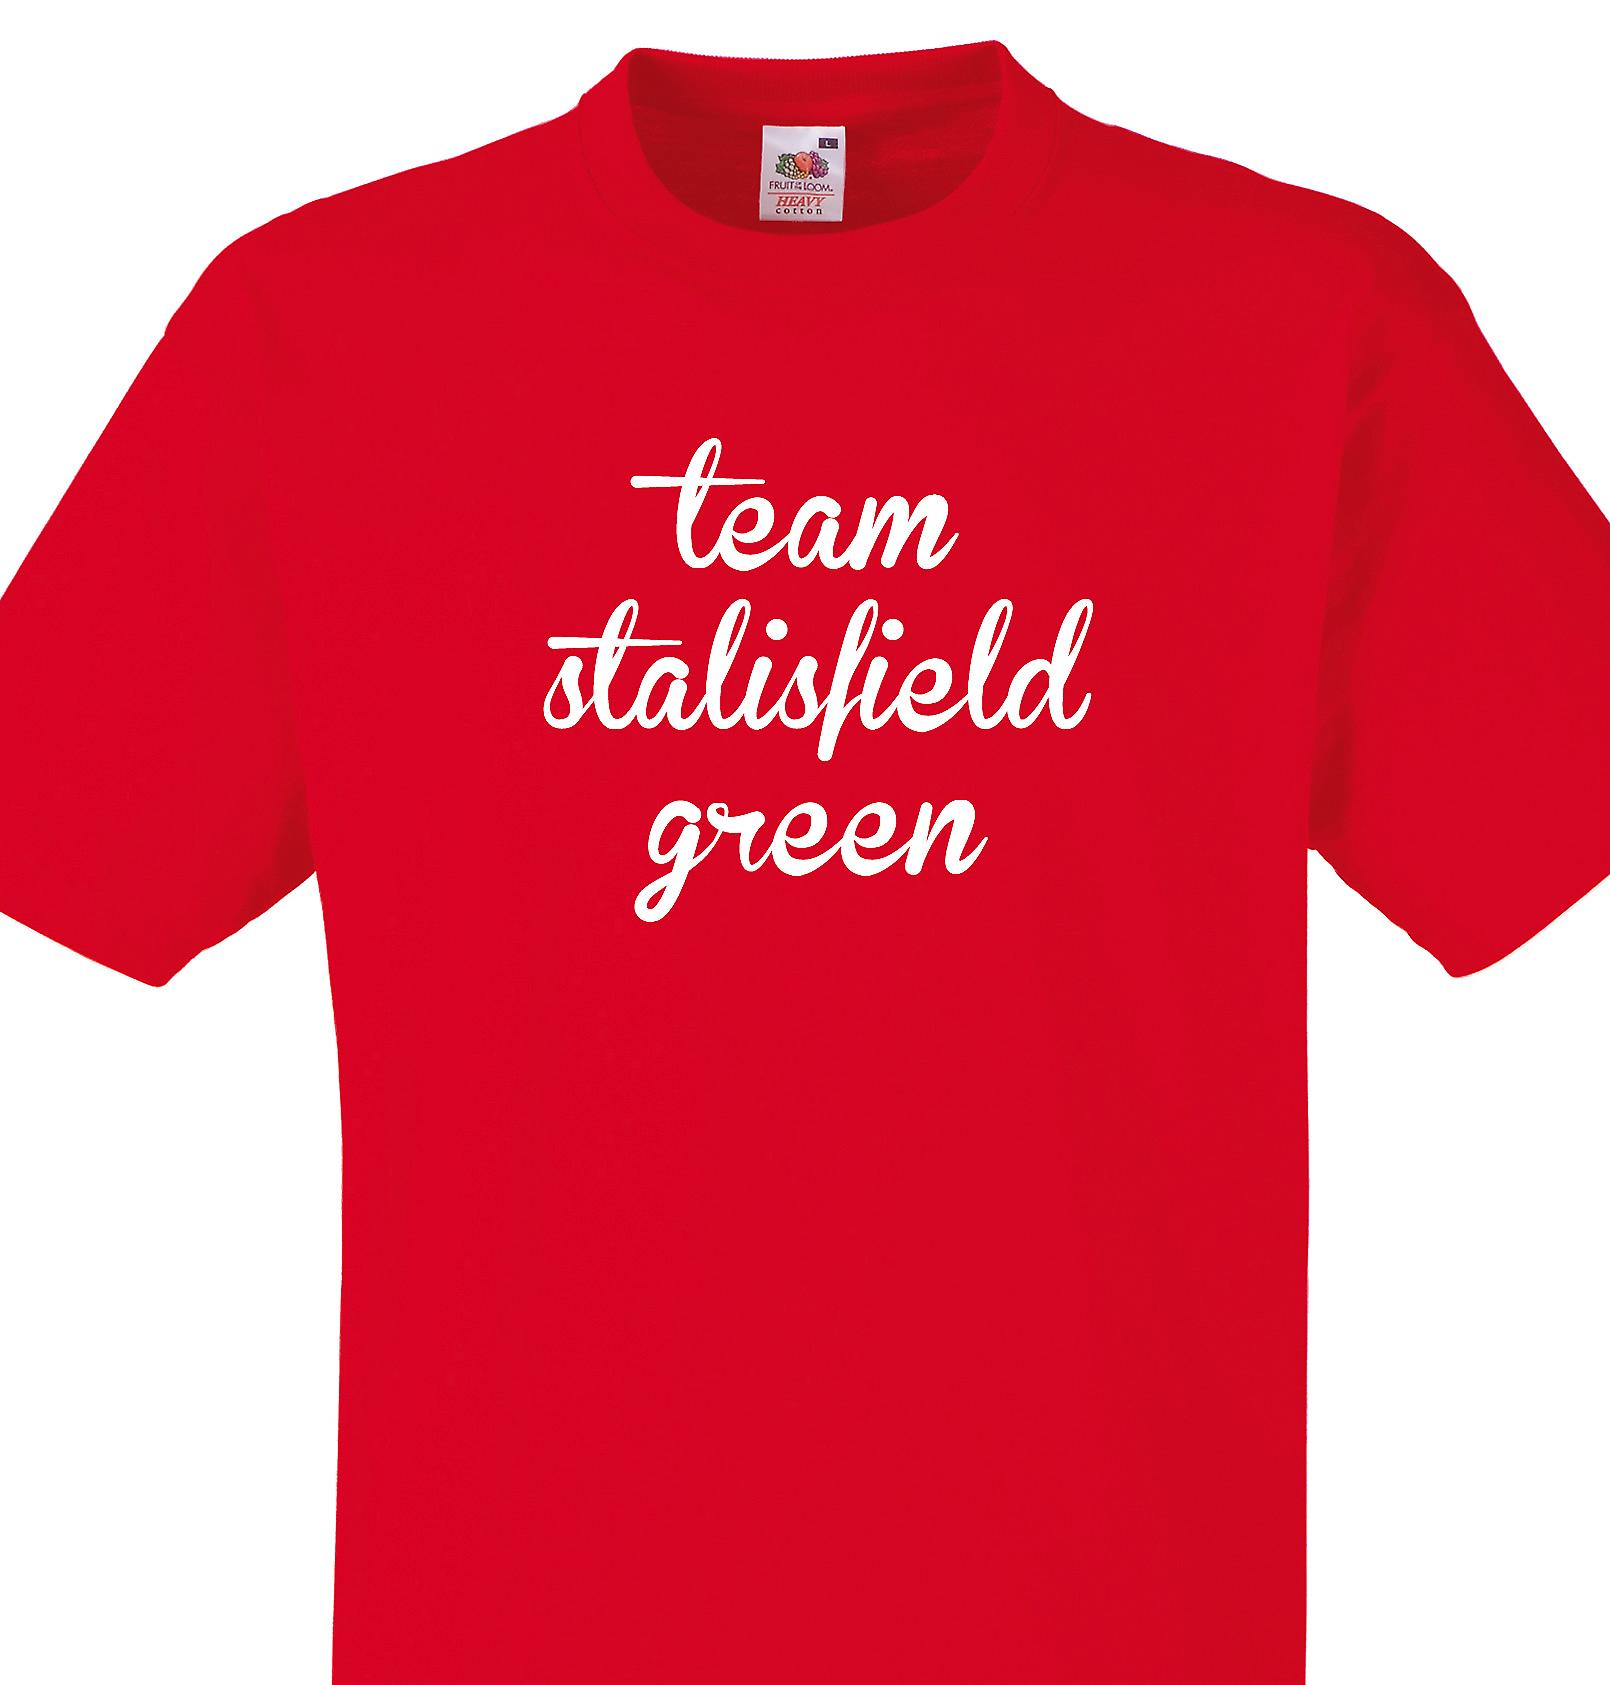 Team Stalisfield green Red T shirt